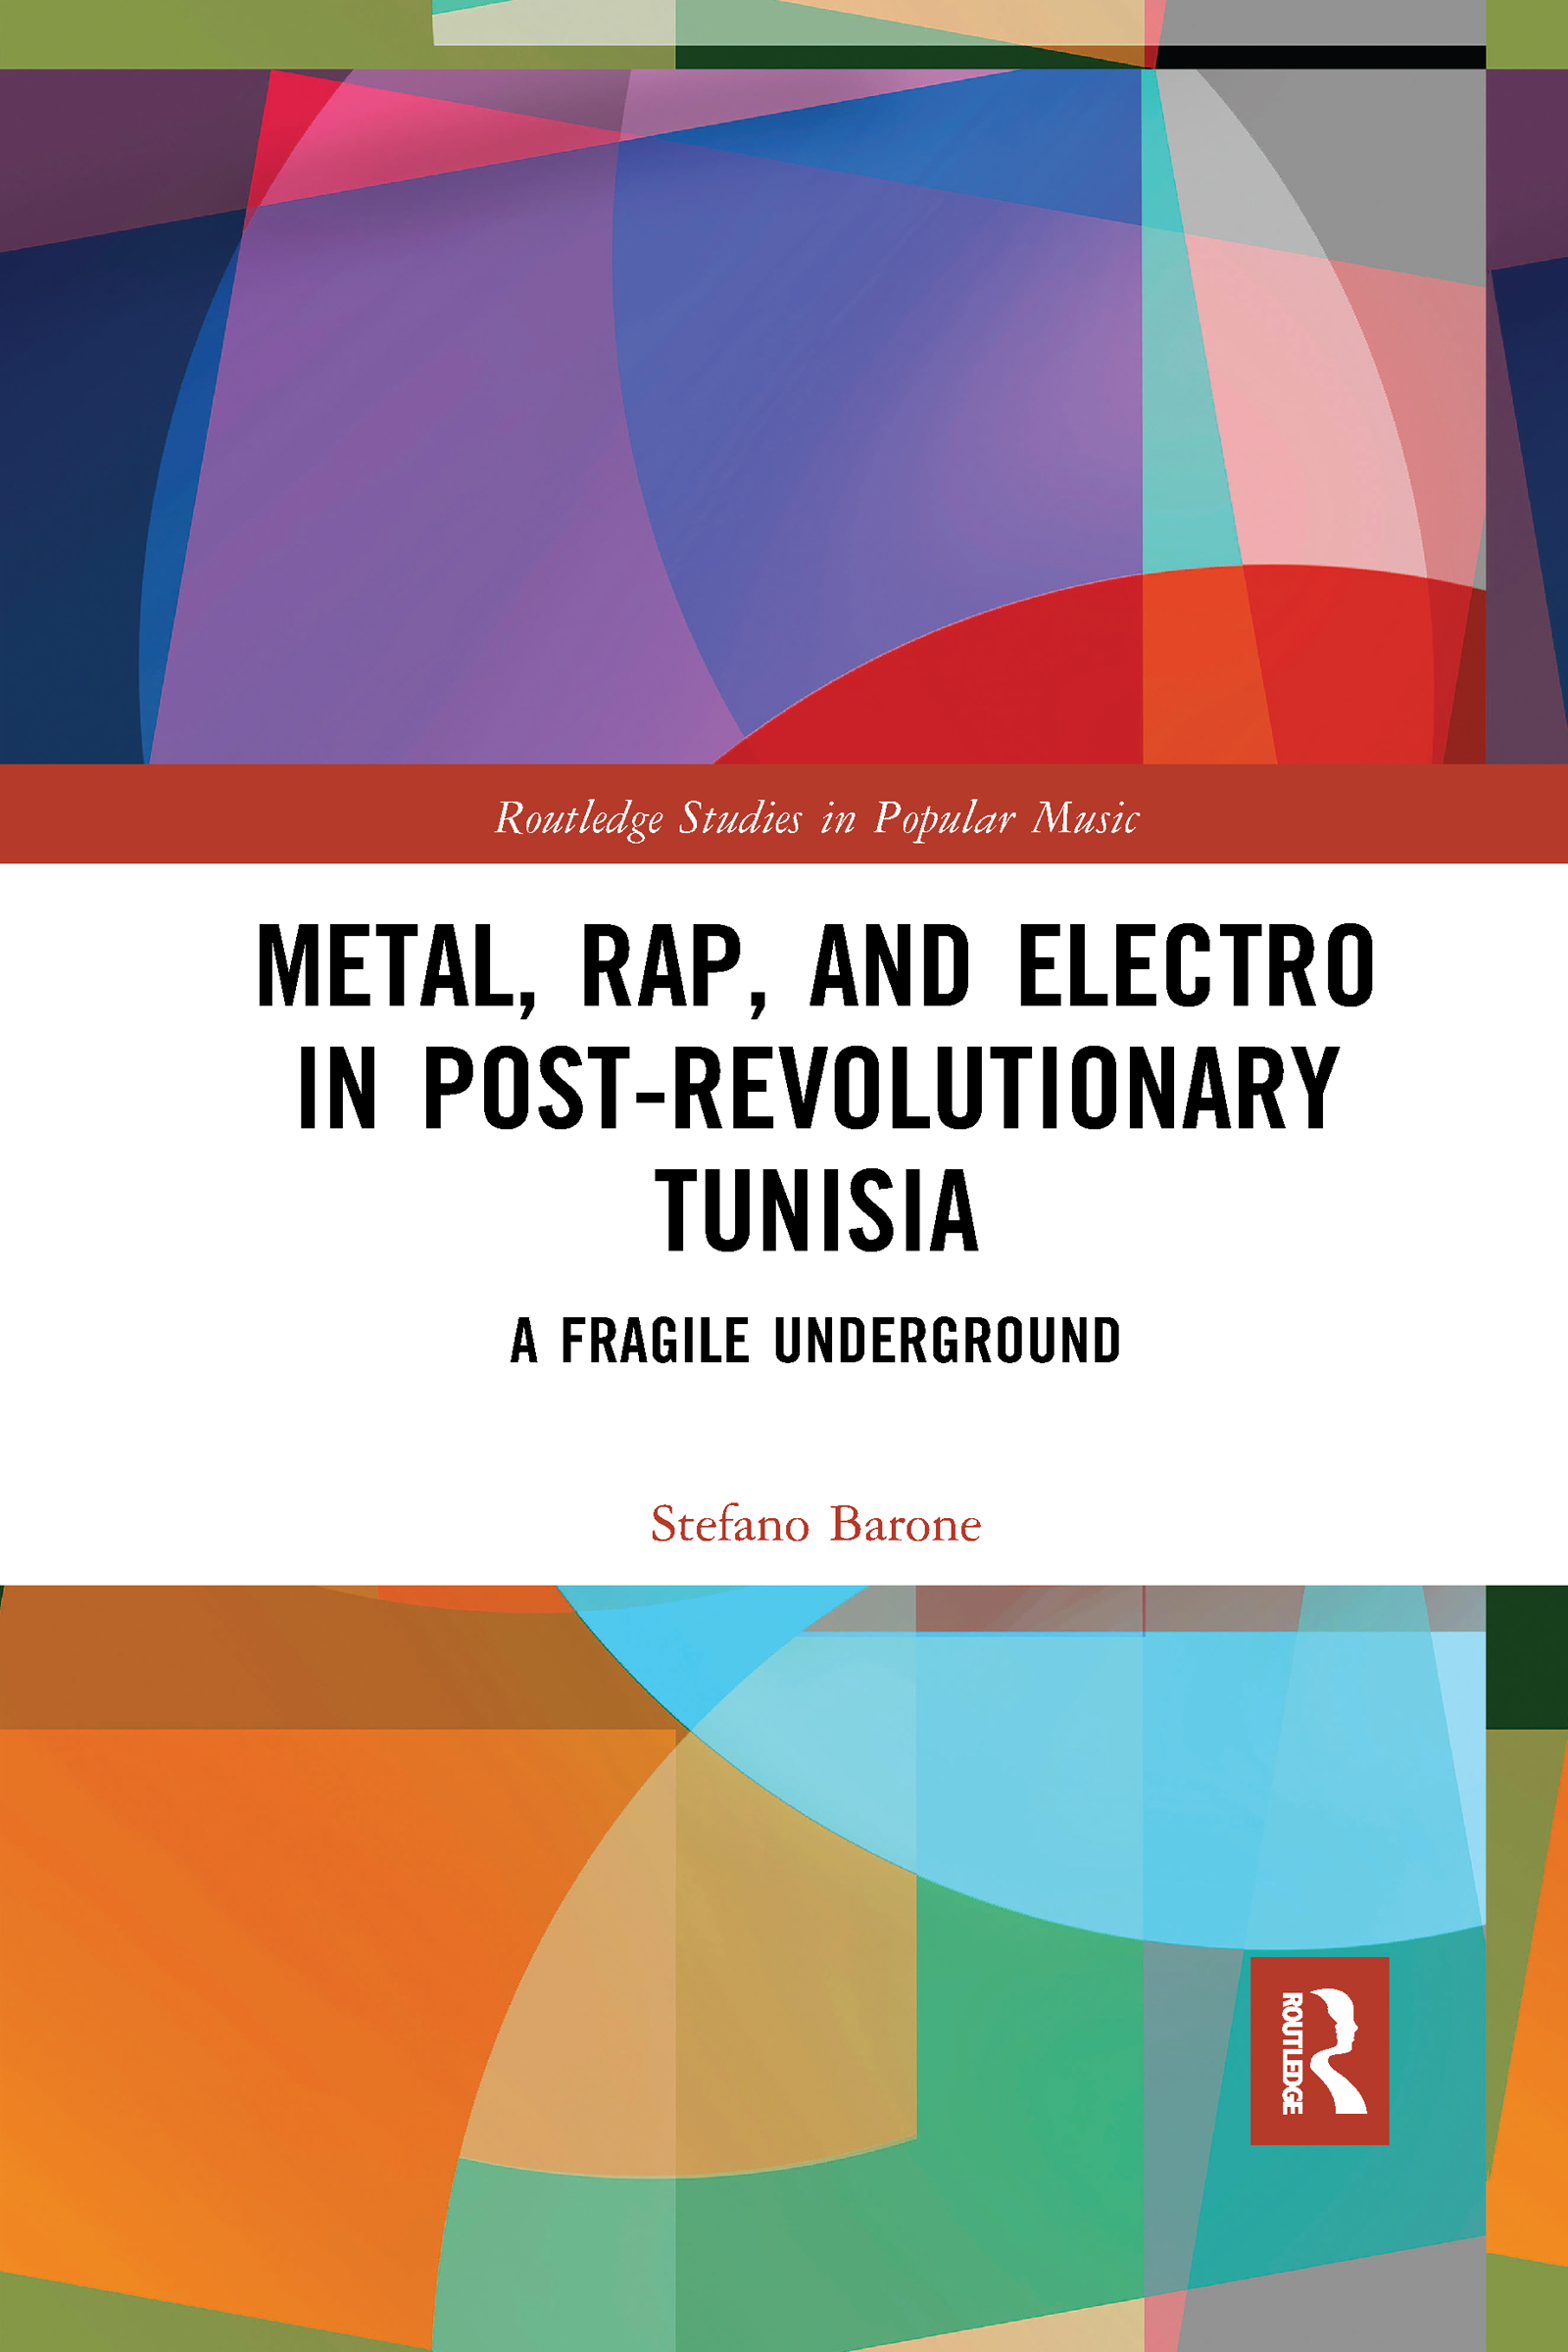 Metal, Rap, and Electro in Post-Revolutionary Tunisia